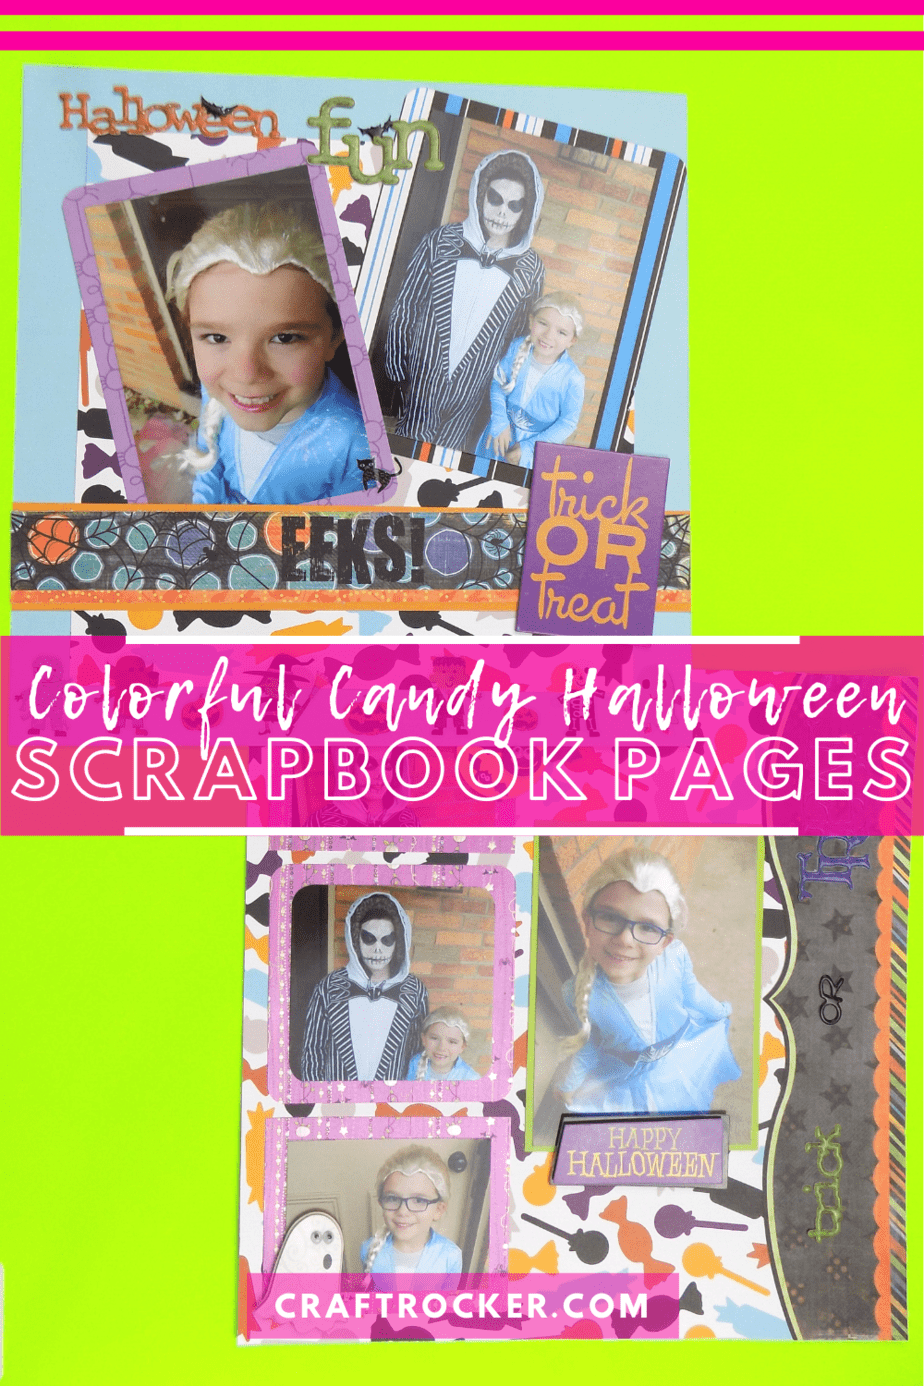 2 Scrapbook Pages with text overlay - Colorful Candy Halloween Scrapbook Pages - Craft Rocker